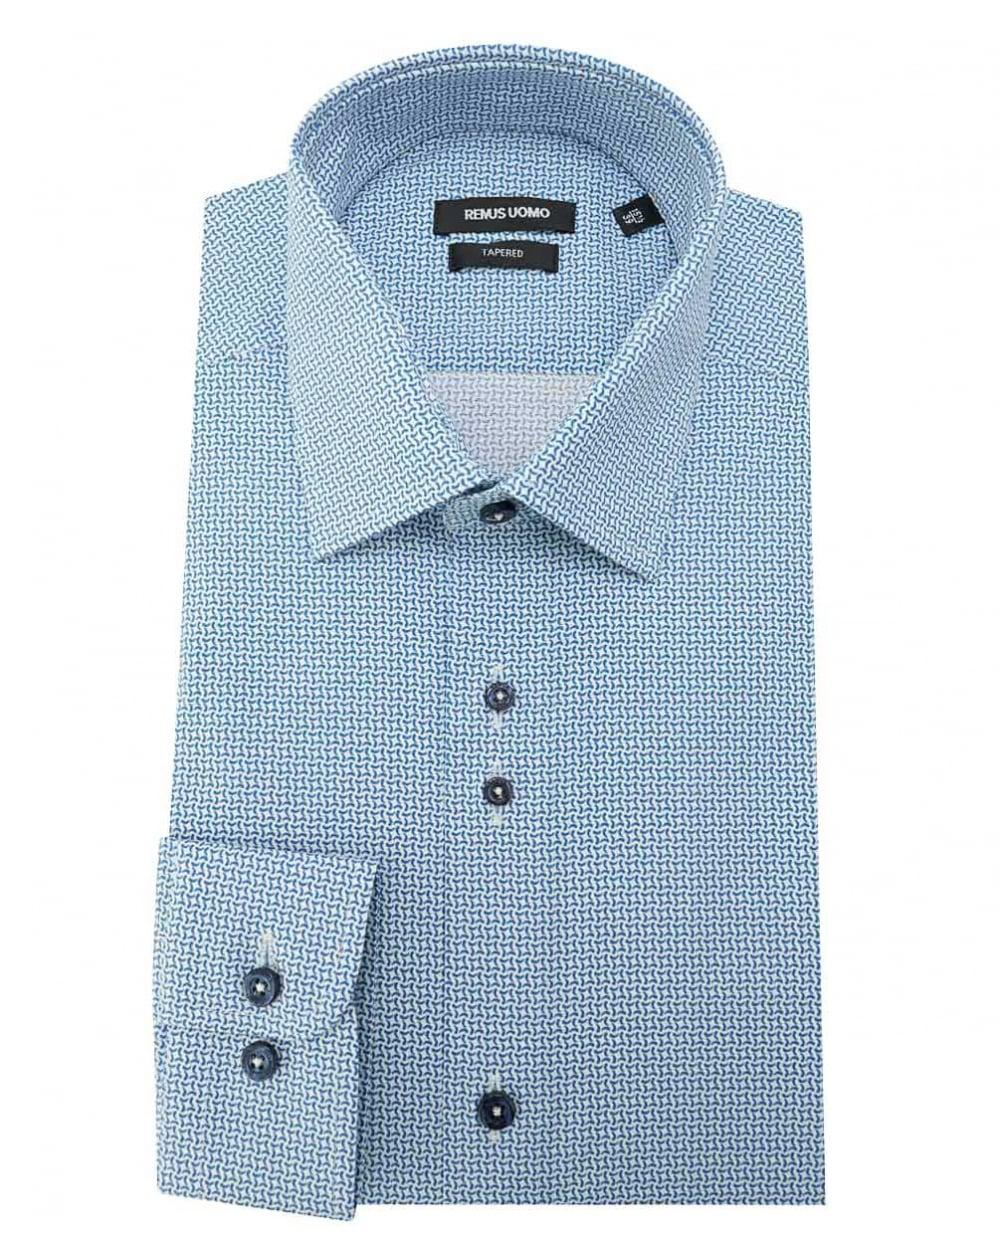 e21c33146b4b Remus Uomo Small Pattern Slim Fit Shirt in Blue for Men - Lyst